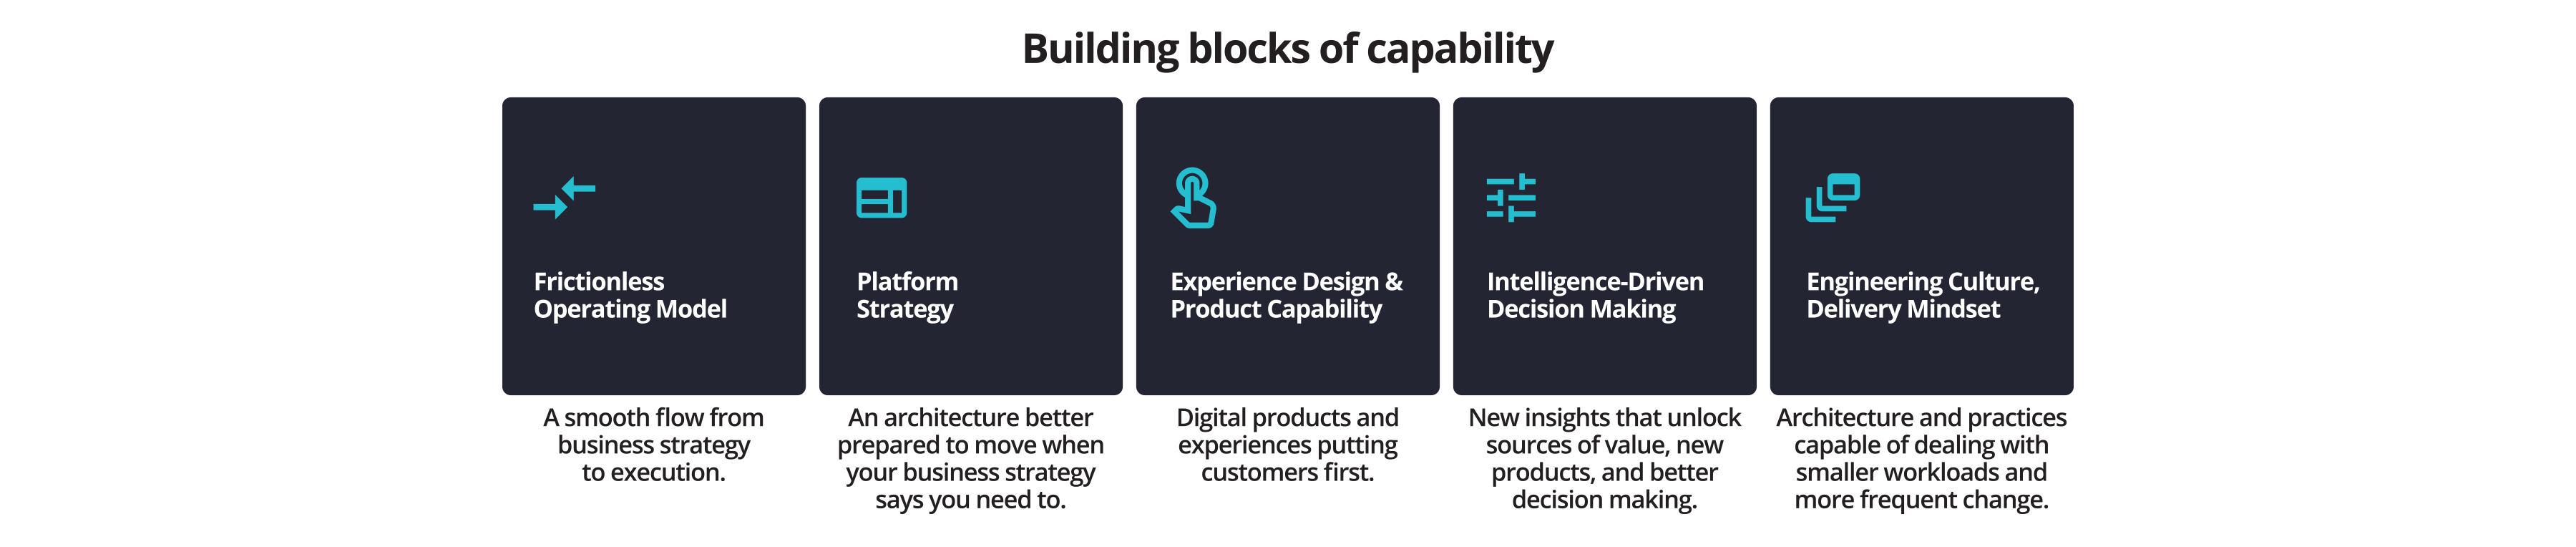 Building blocks of capability